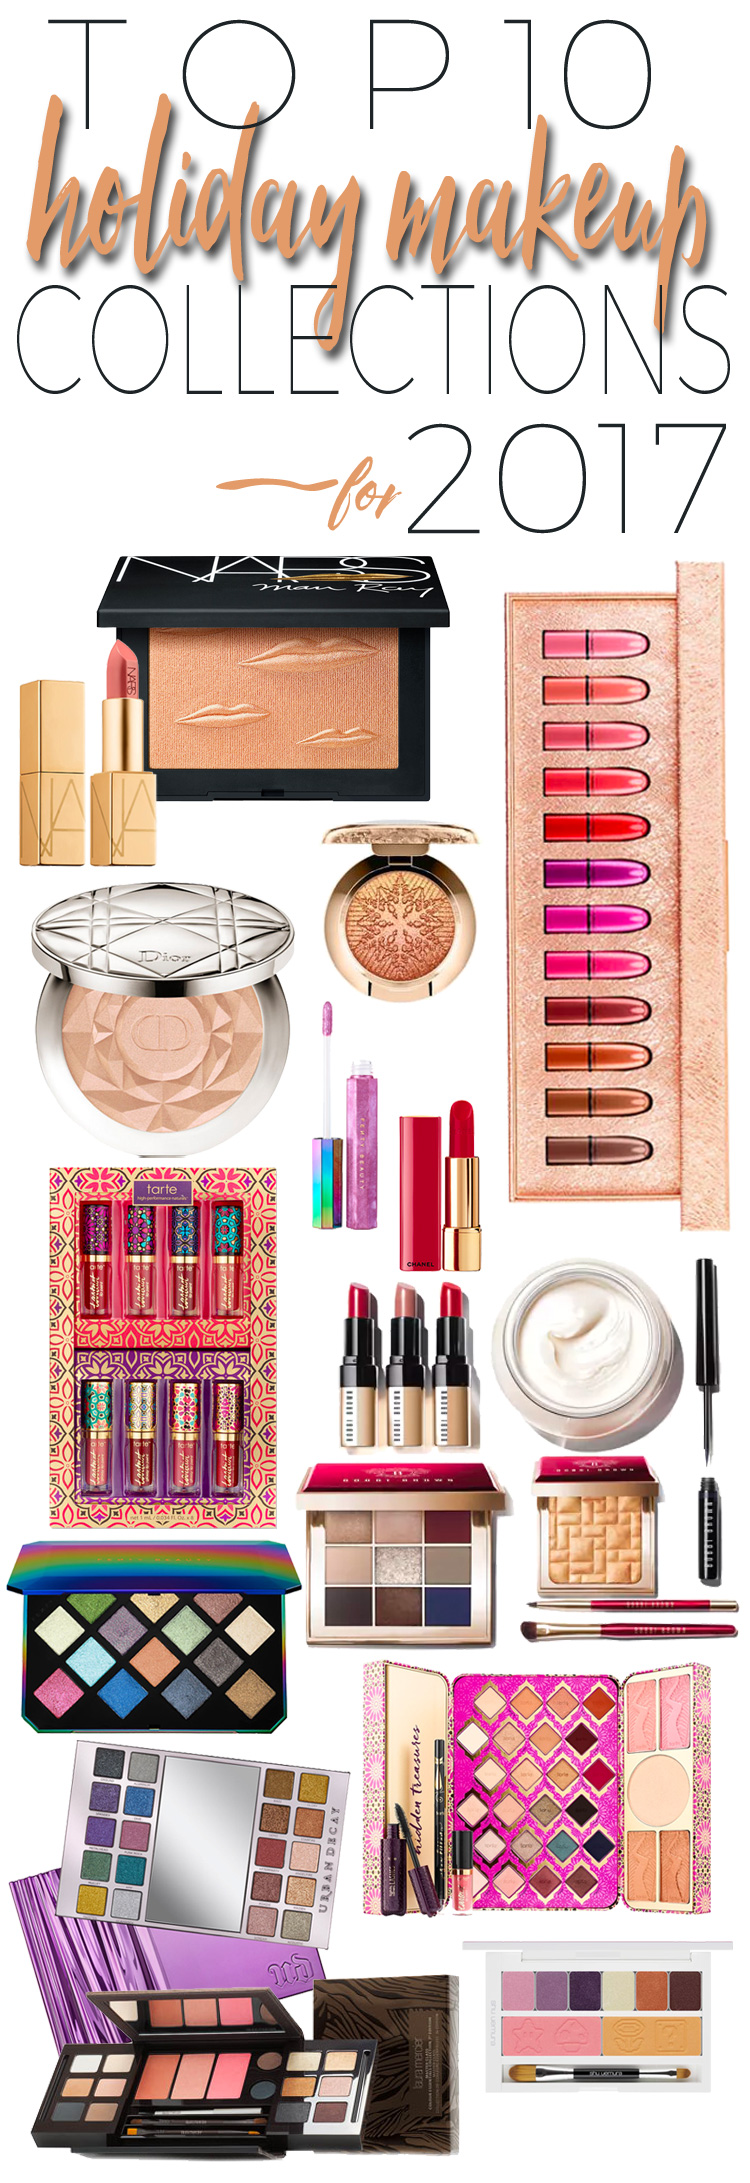 Top 10 Holiday Makeup Collections for 2017